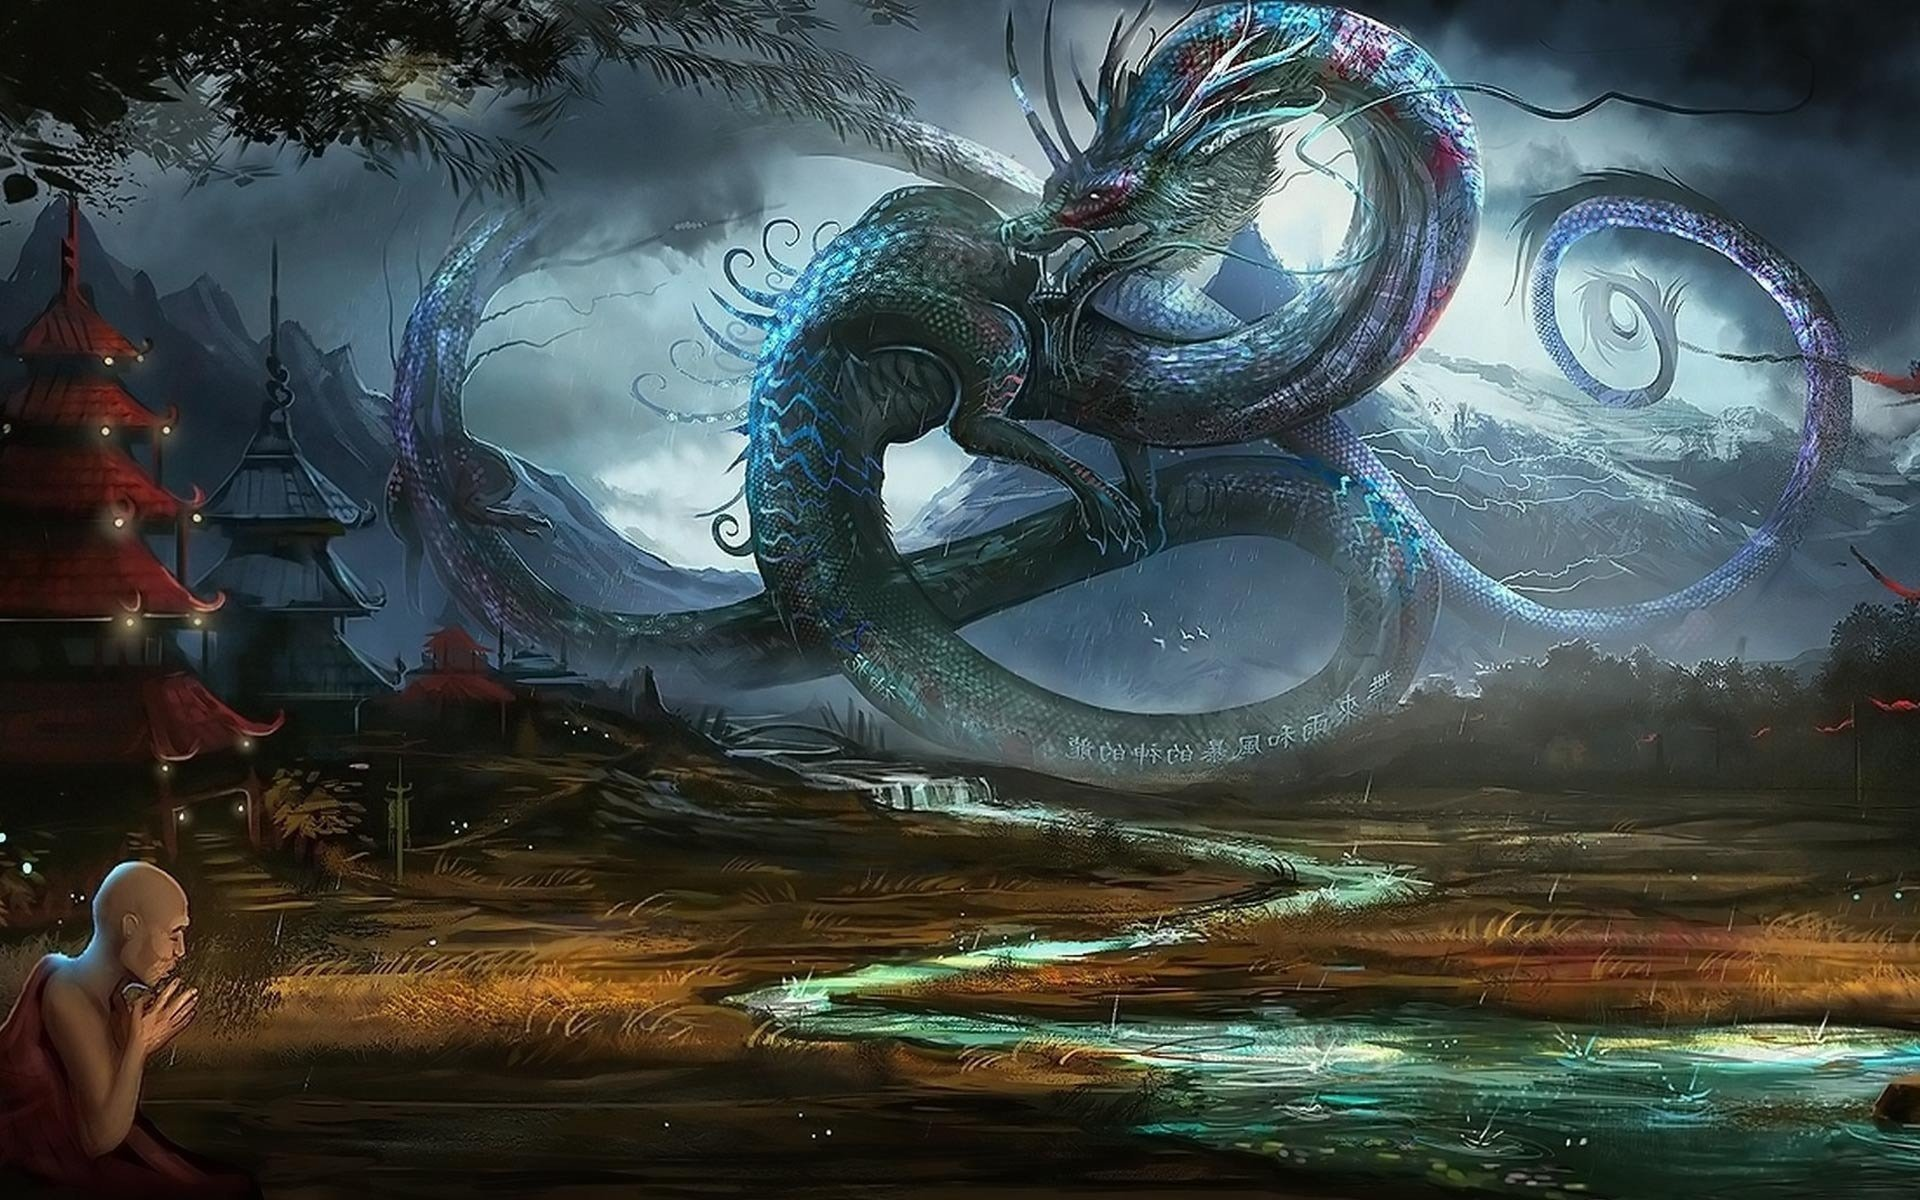 Dragon full hd wallpaper and background image 1920x1200 - Ancient chinese art wallpaper ...